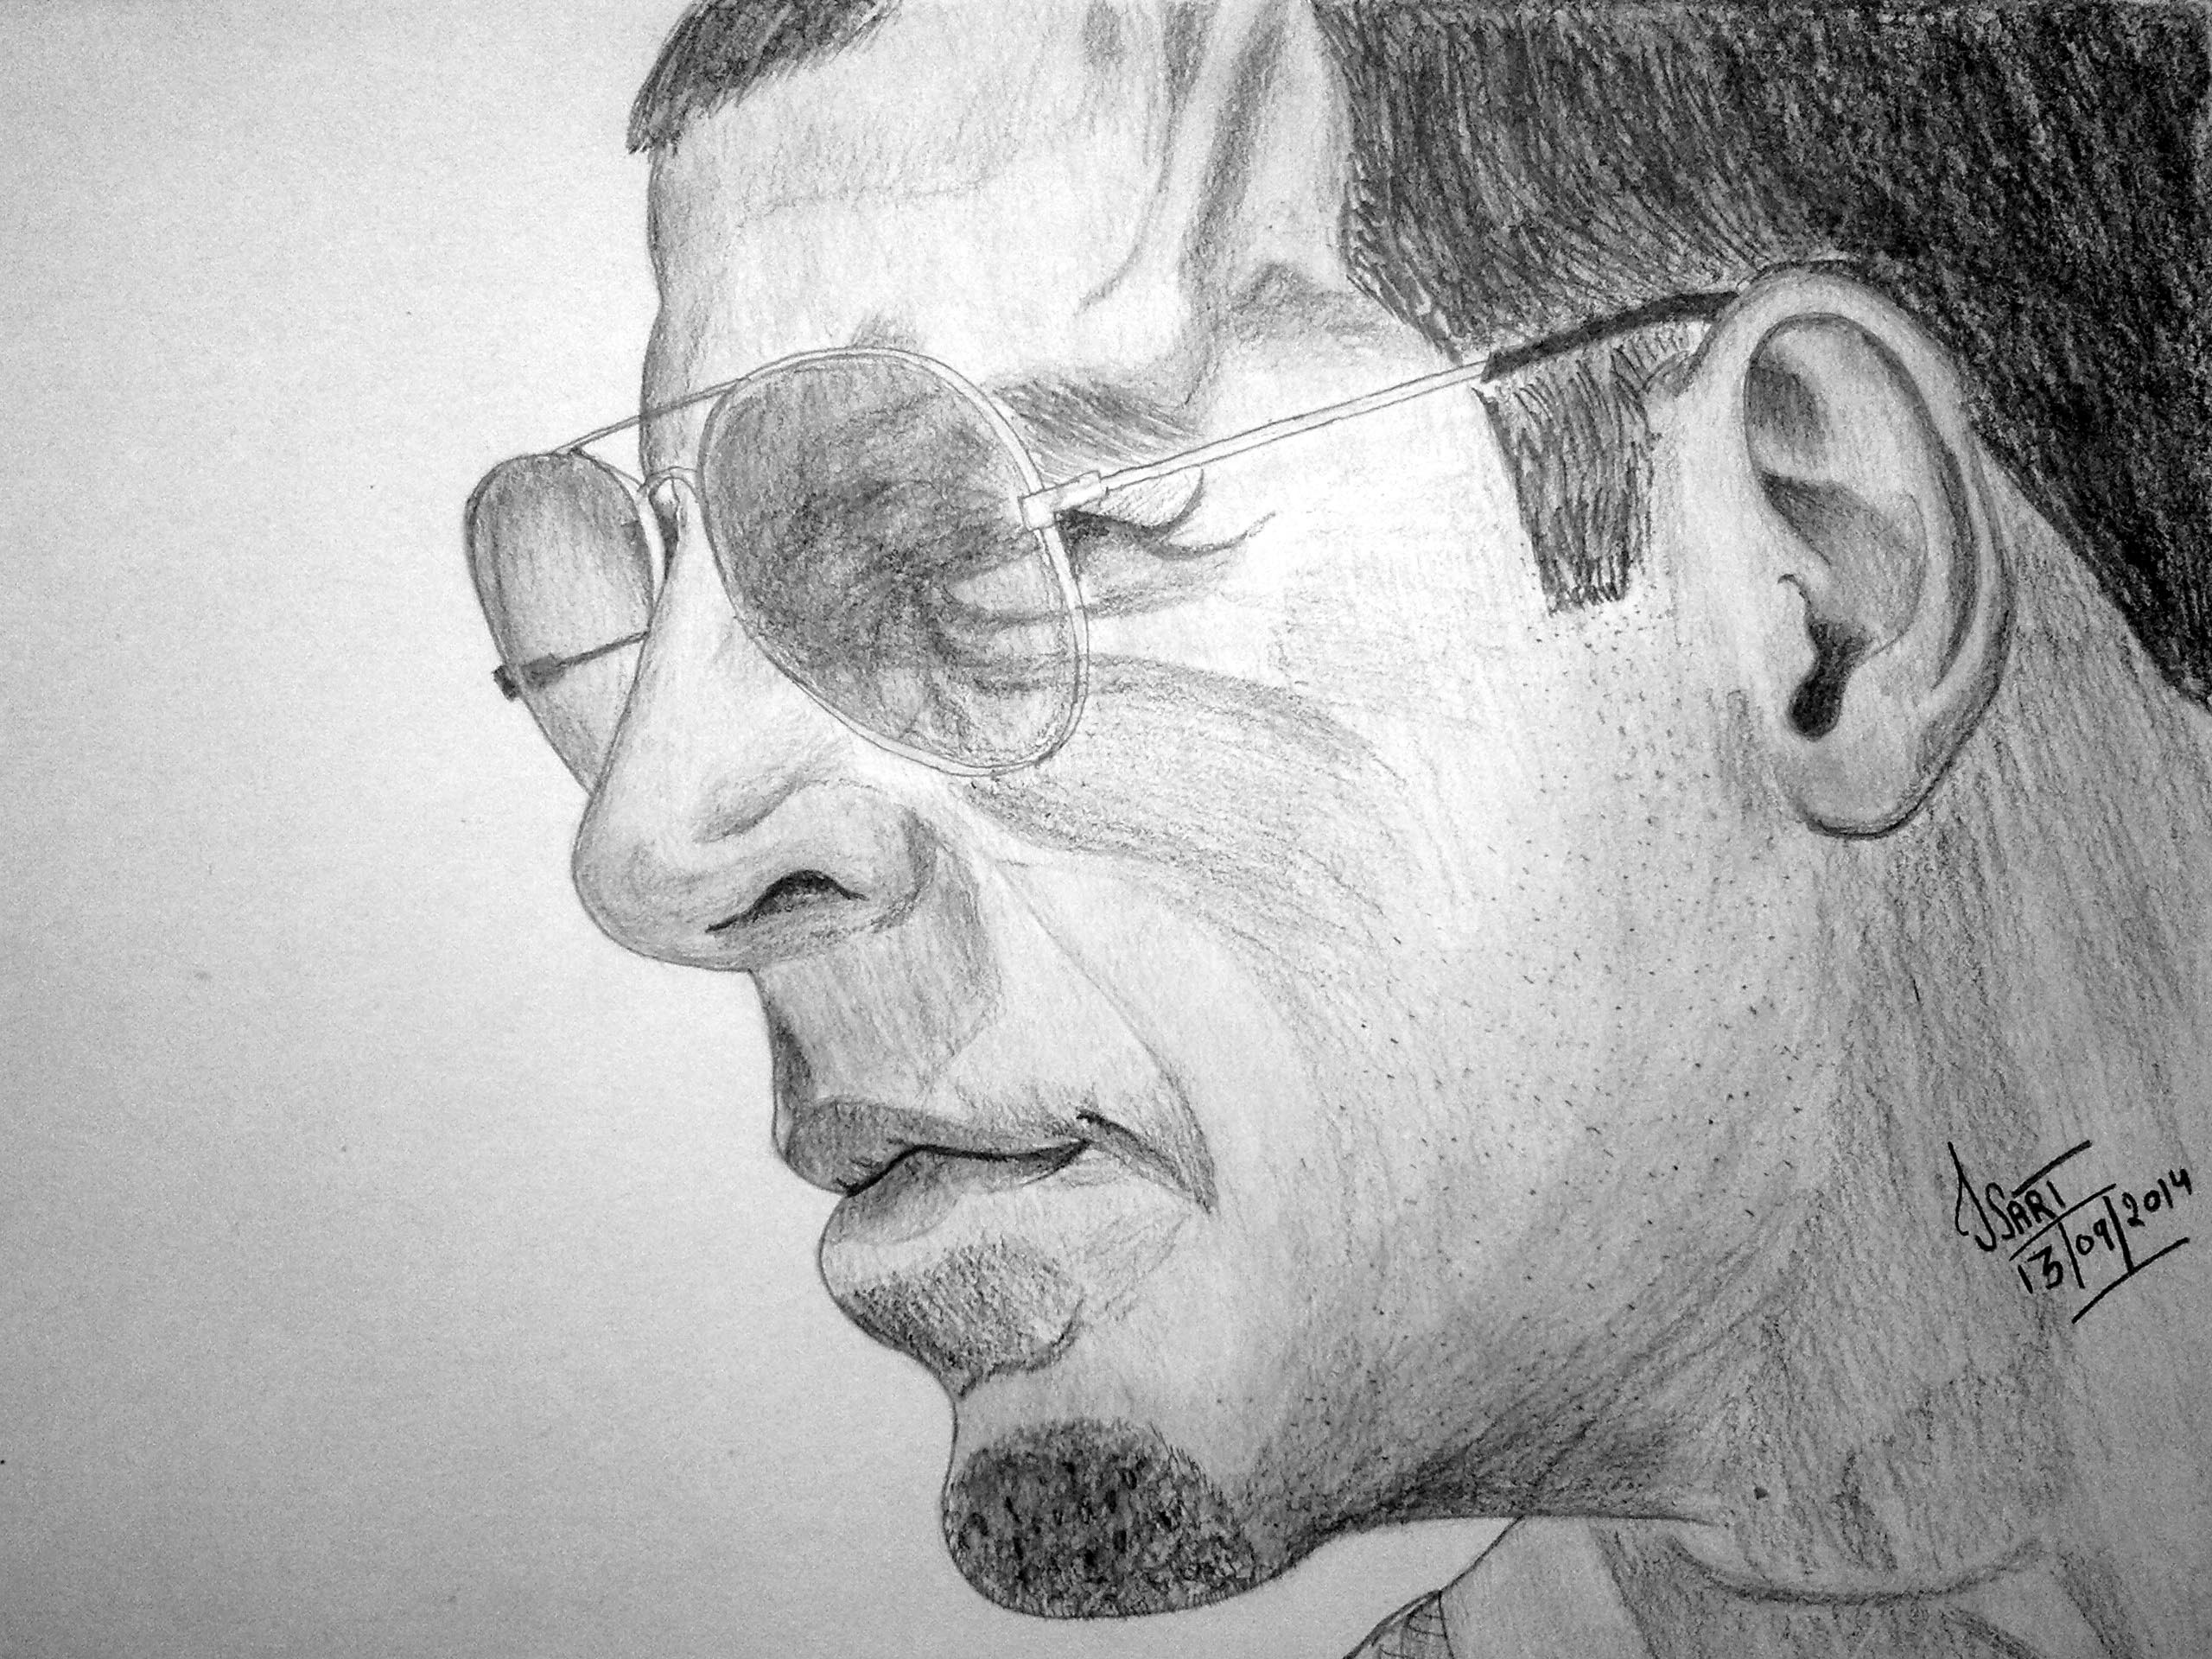 Buy Akshay Kumar S Pencil Sketch Online Shopclues Com